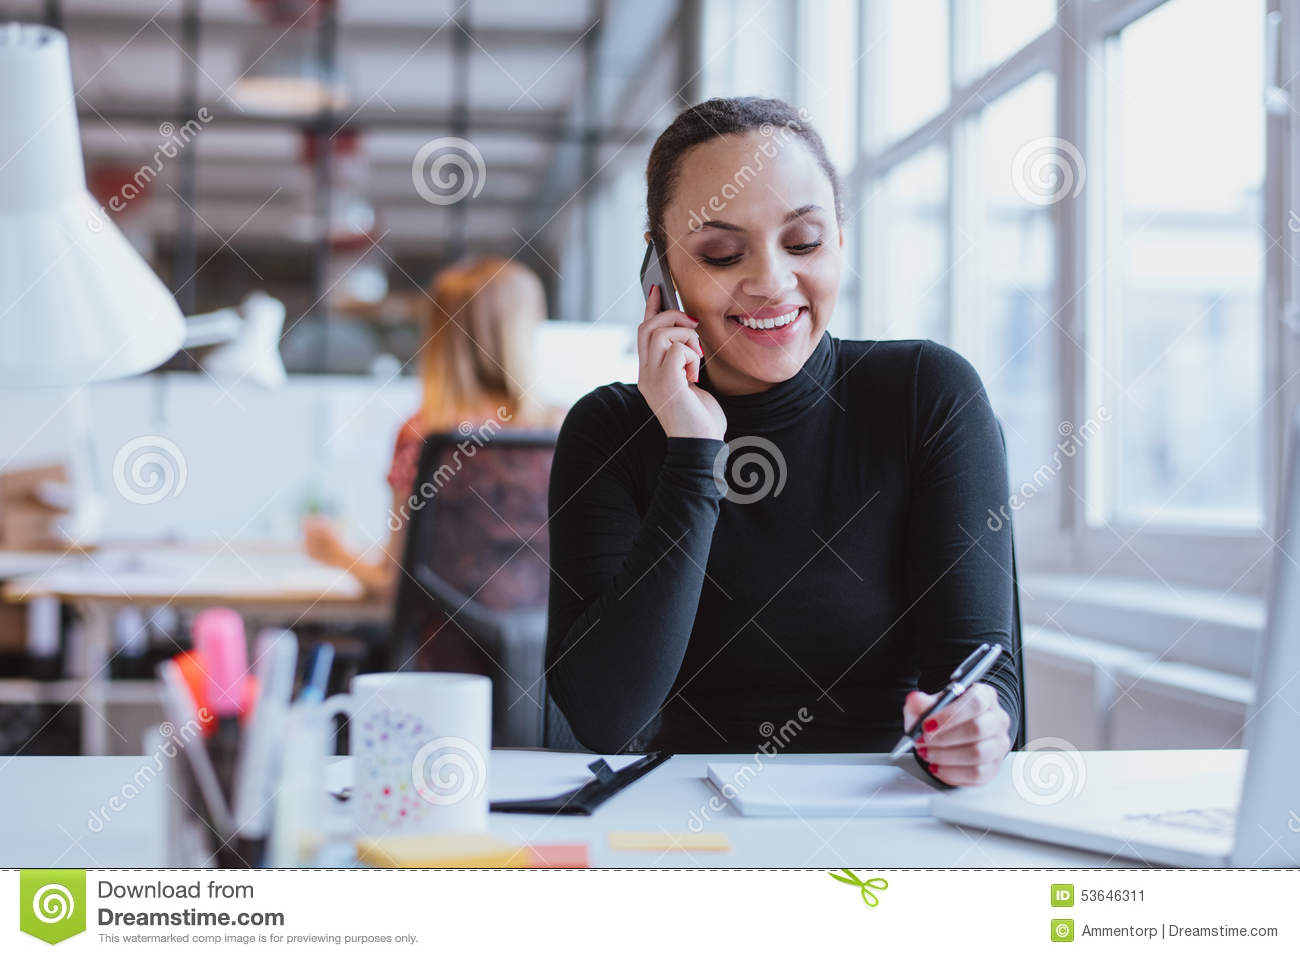 Woman Answering A Phone Call While At Work Stock Image ...